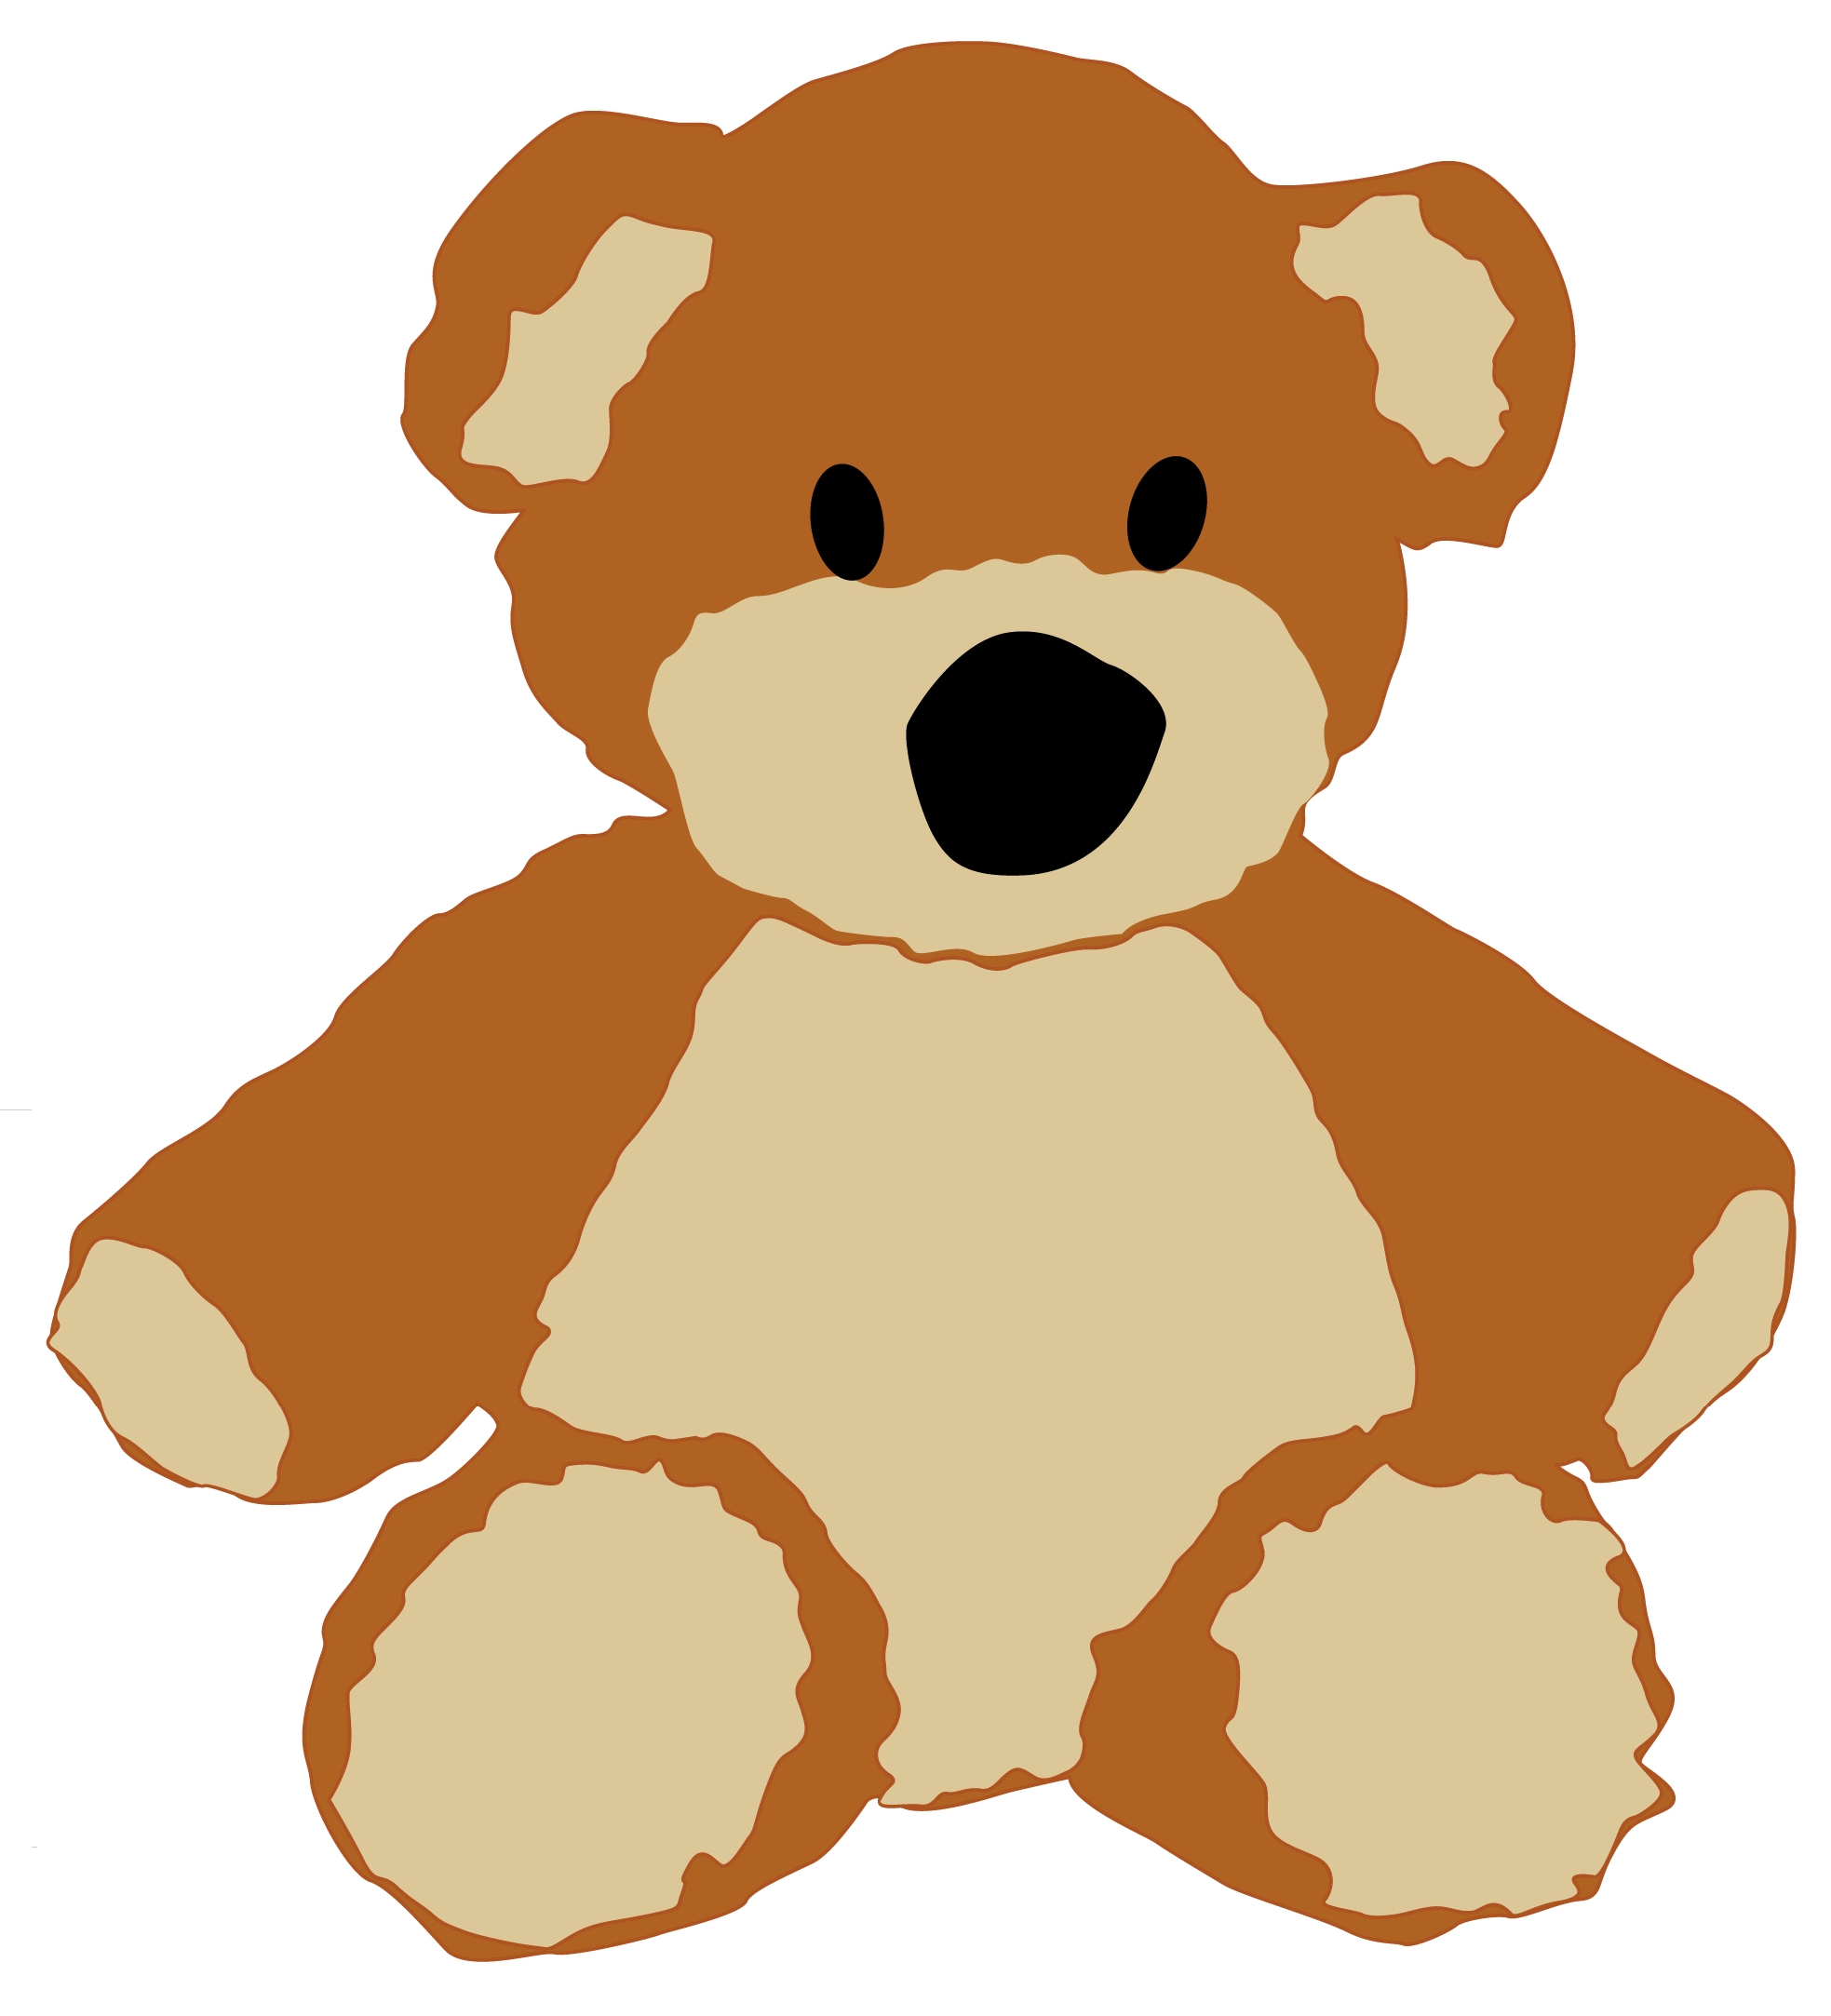 Teddy | Free Images at Clker.com - vector clip art online, royalty ...